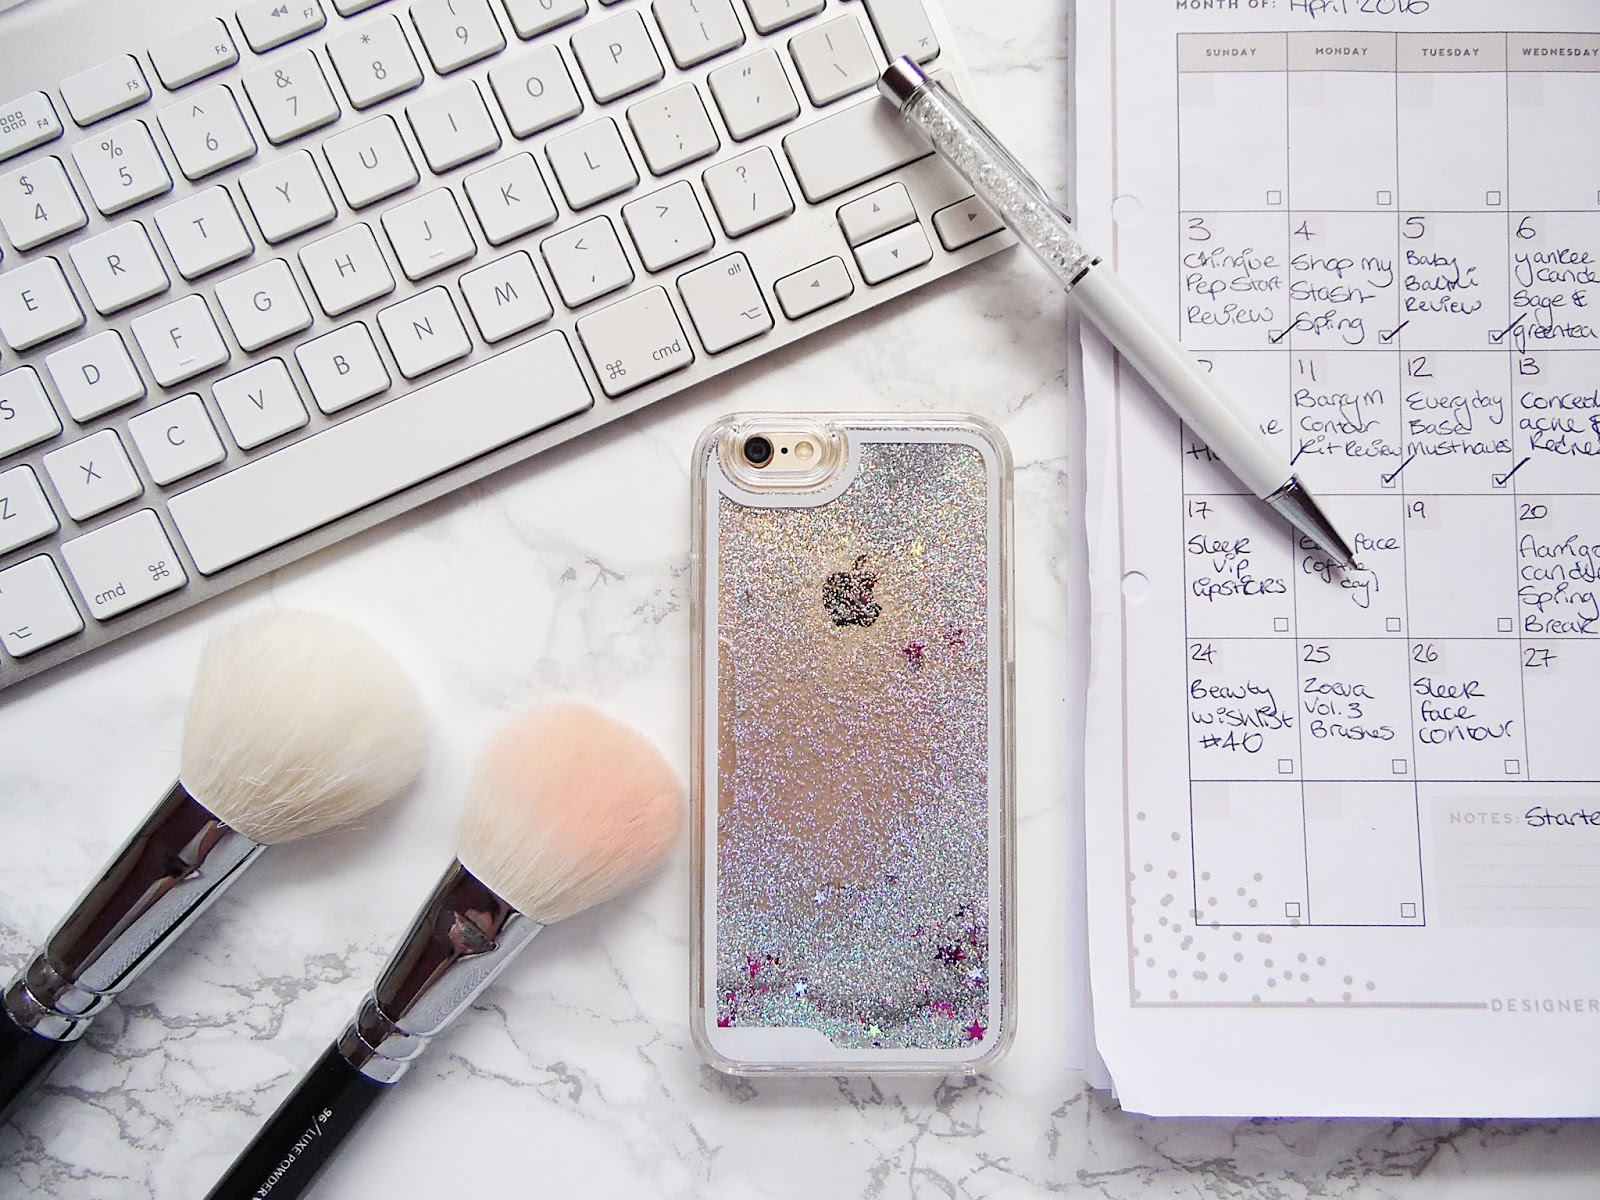 Staying Motivated & Organised For Blogging